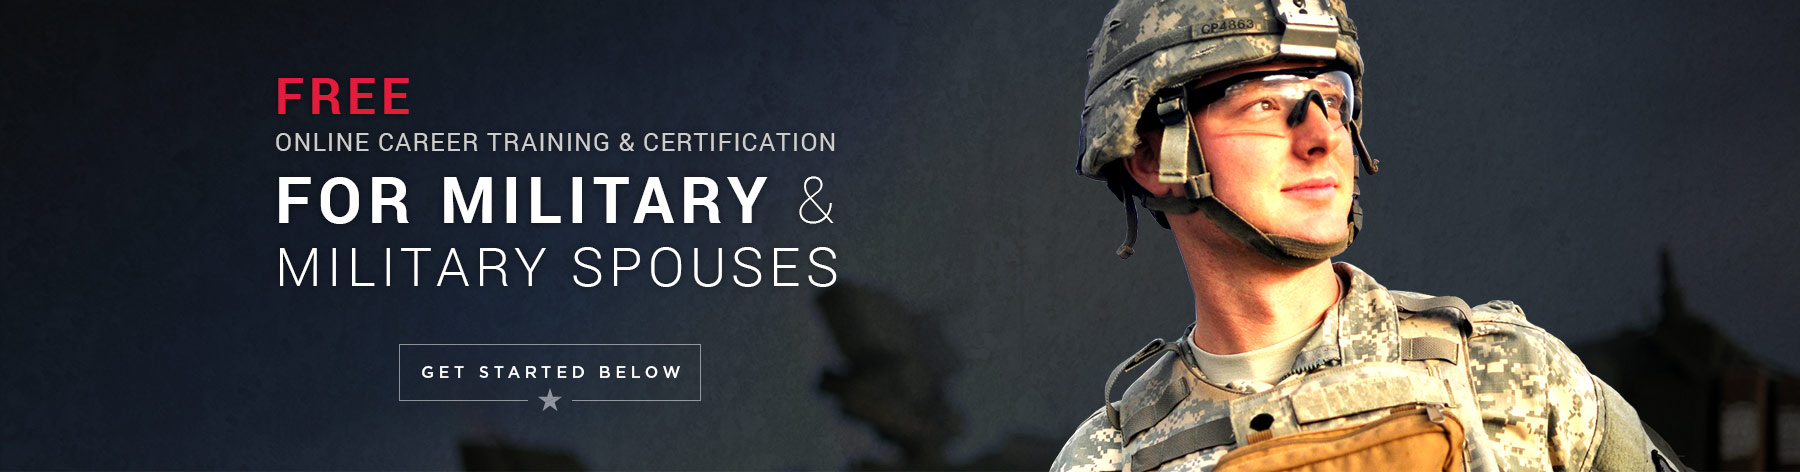 """Banner featuring a soldier that reads: """"free online careeer training & certification for Military & military spouses. Get started below"""""""